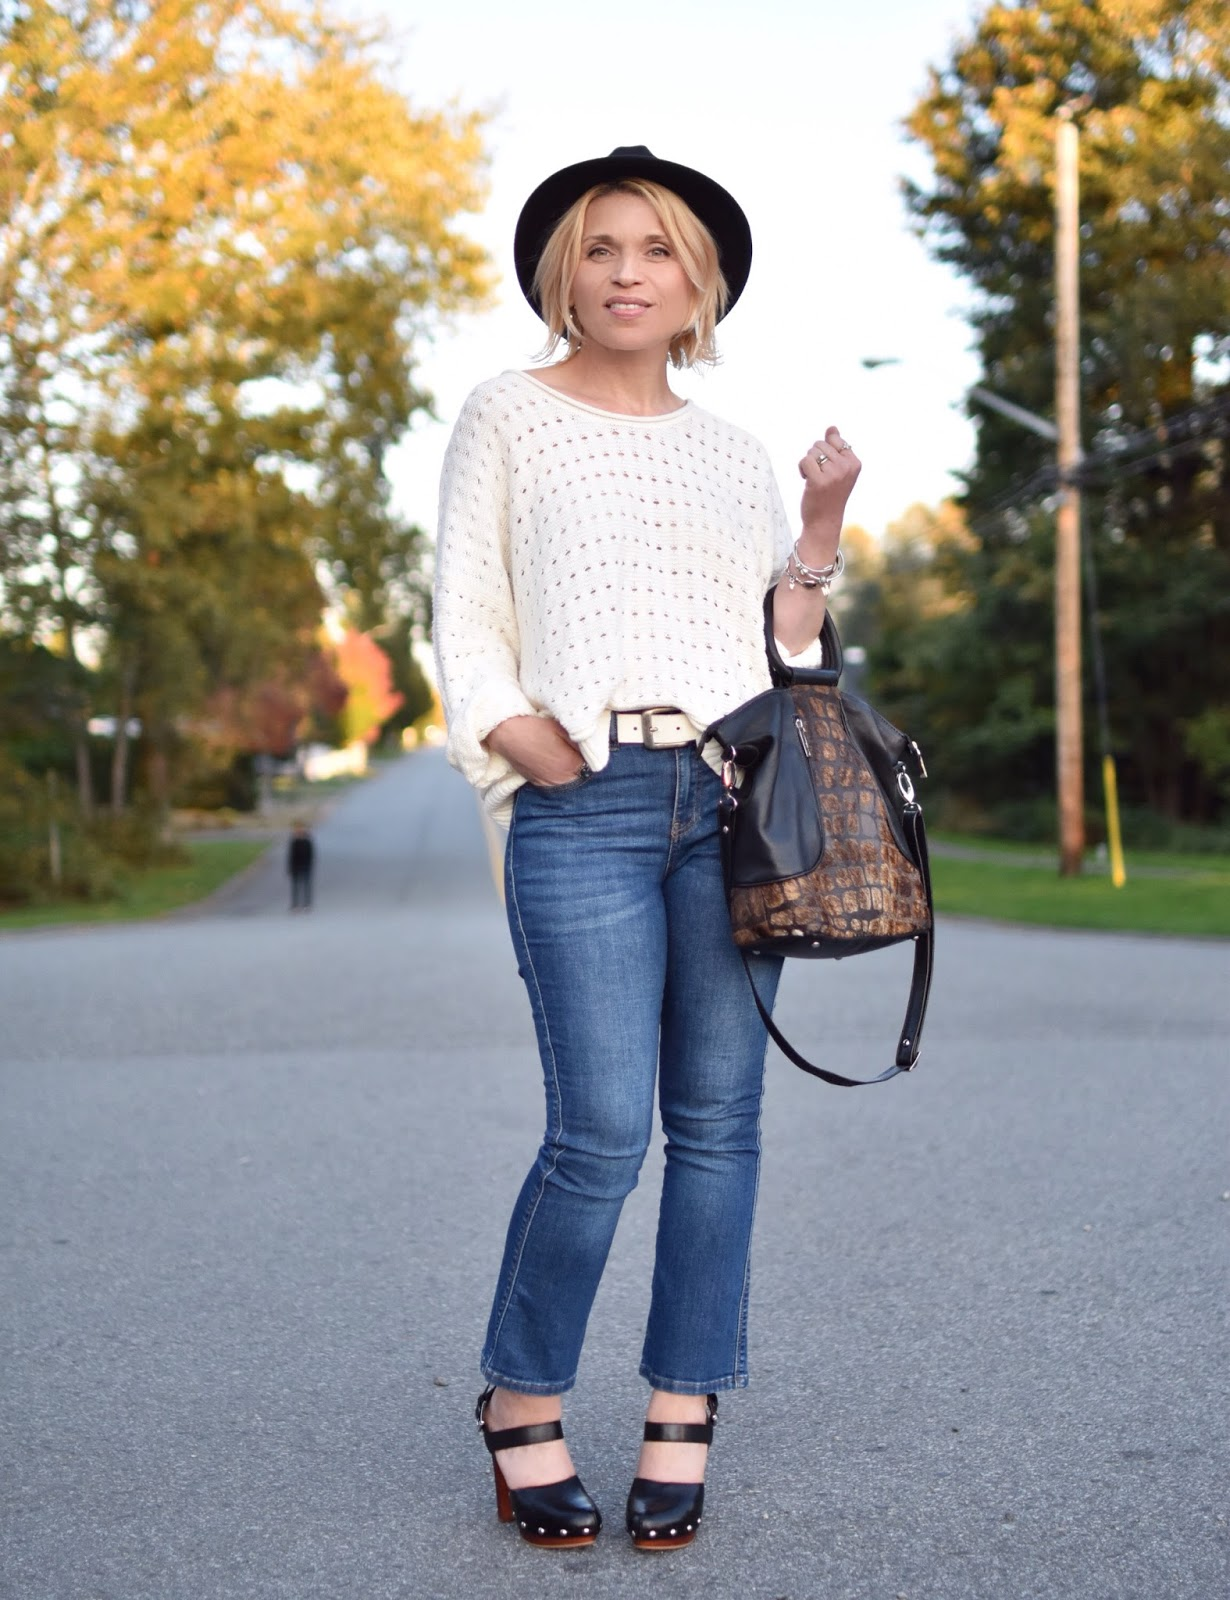 Outfit inspiration c/o Monika Faulkner - cropped flare jeans styled with a white sweater, platform heels, and a felt fedora